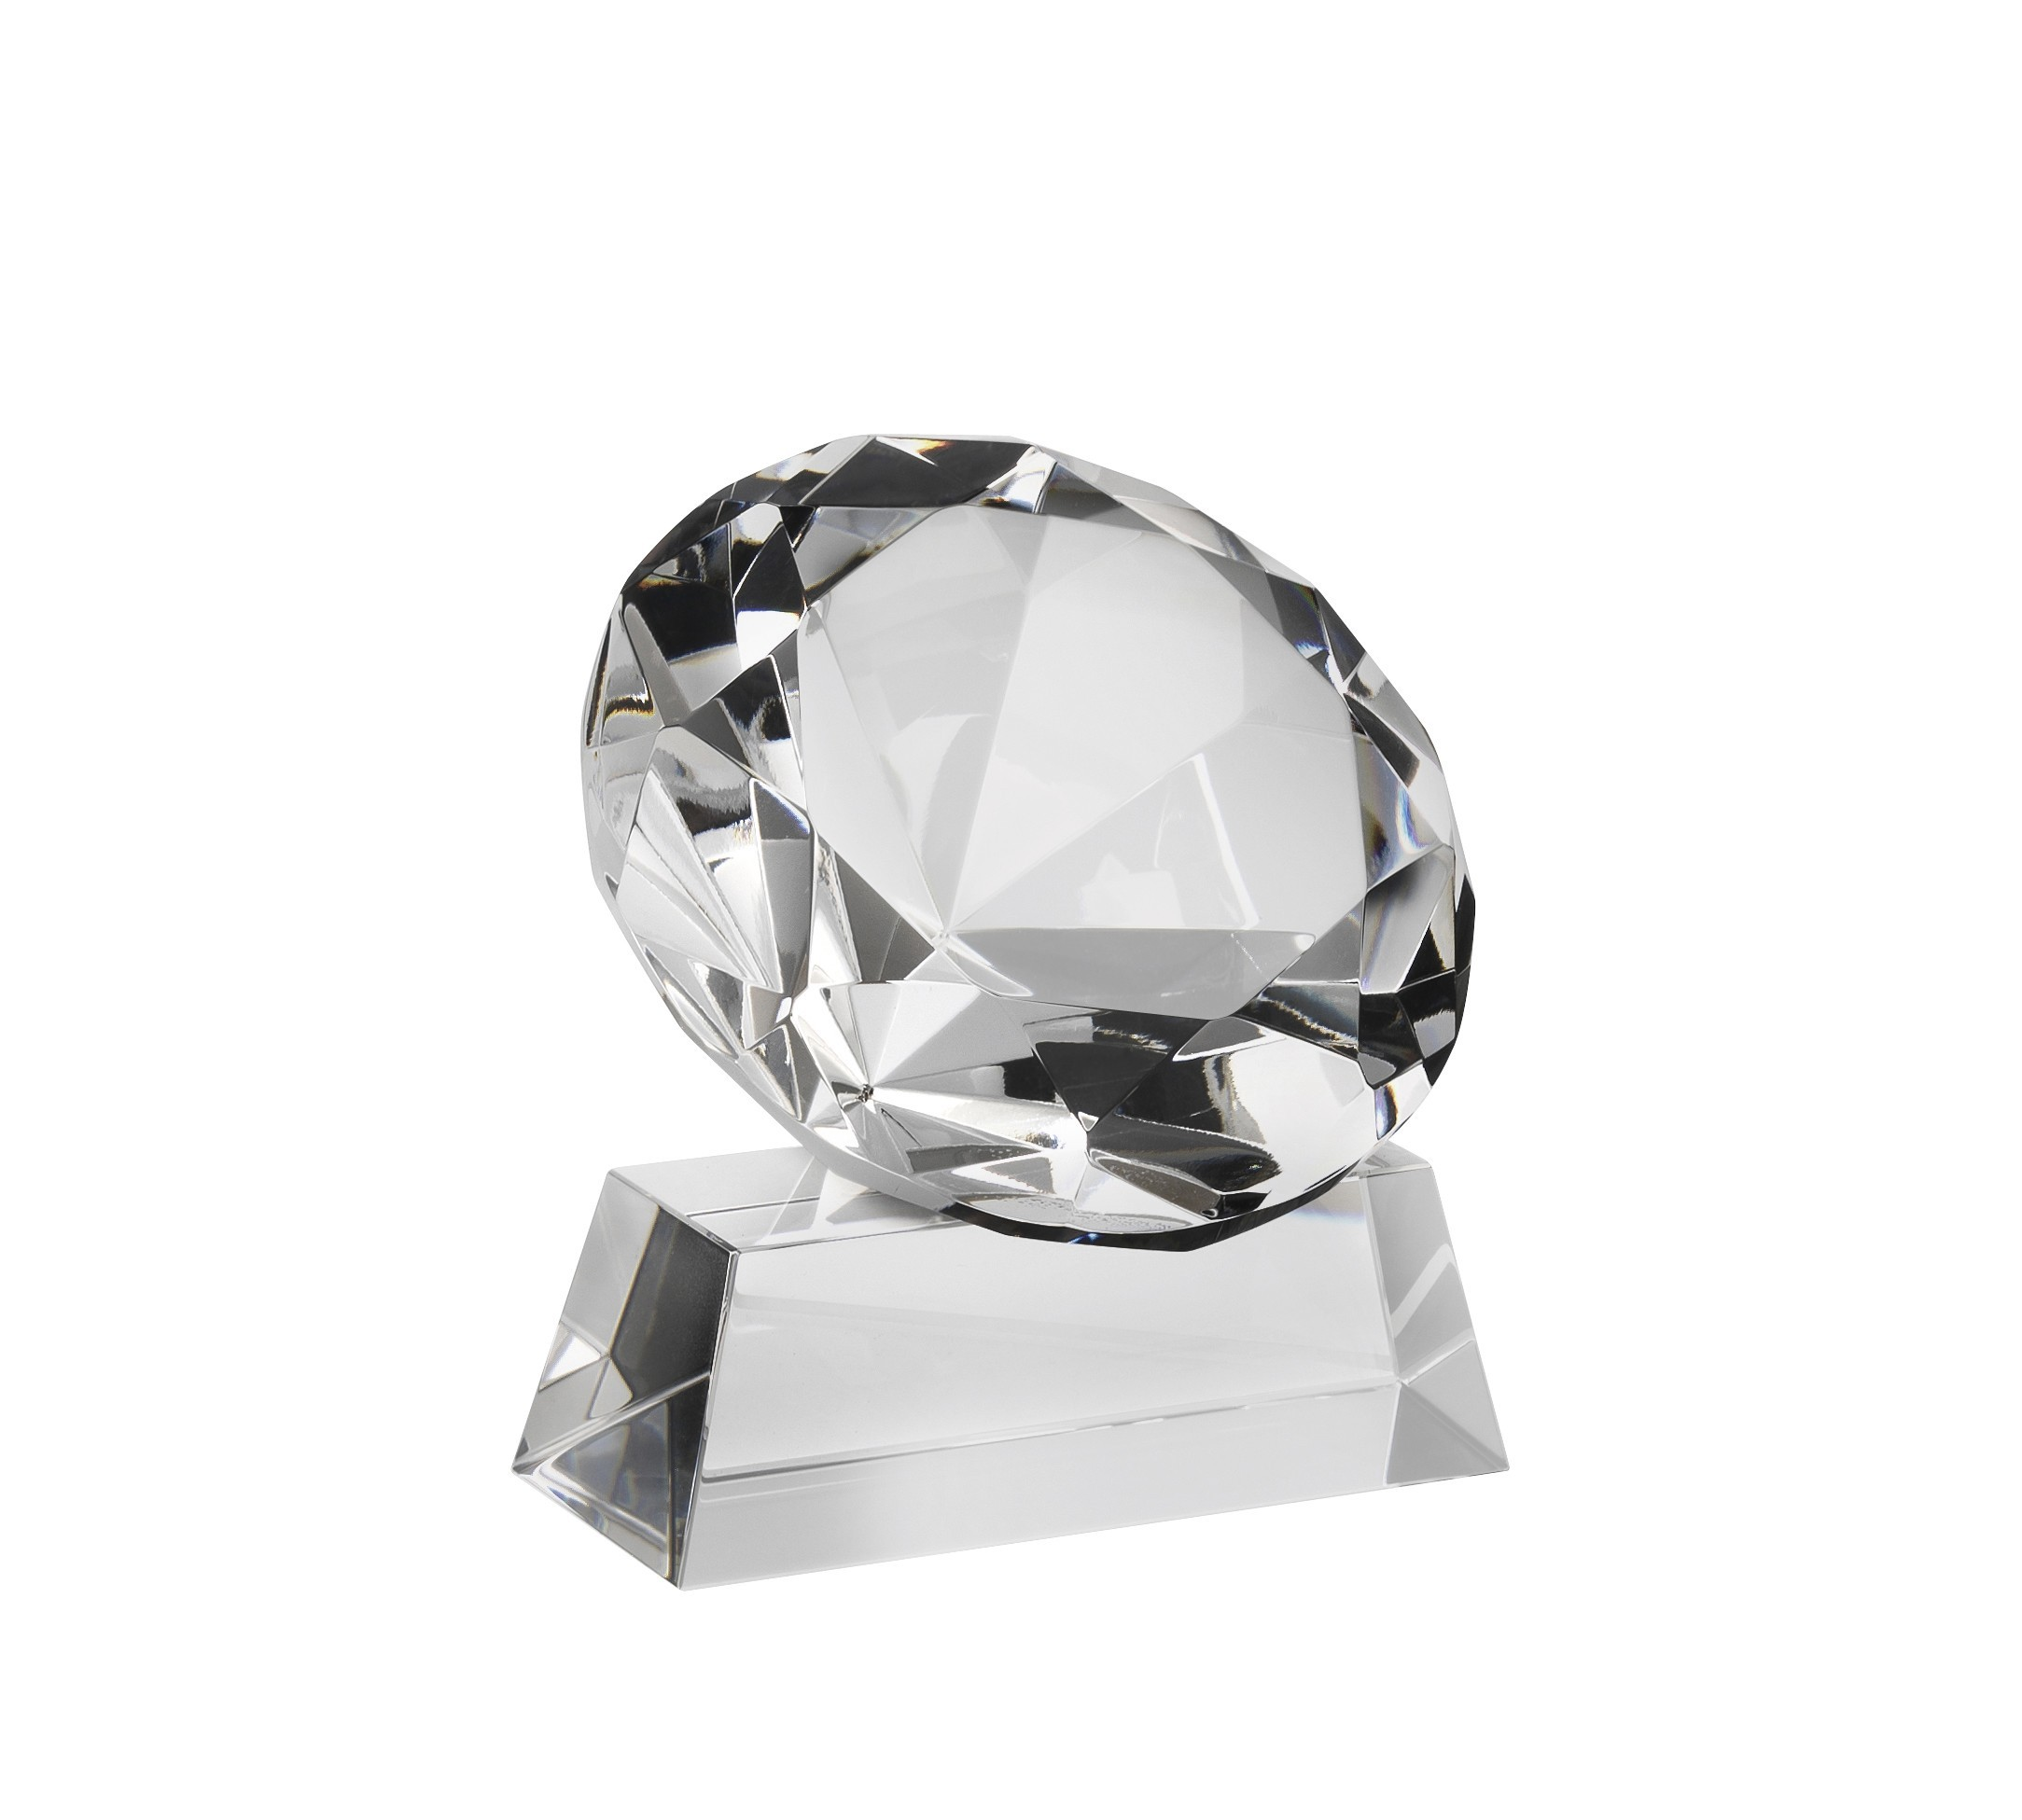 26cm Crystal Star Award